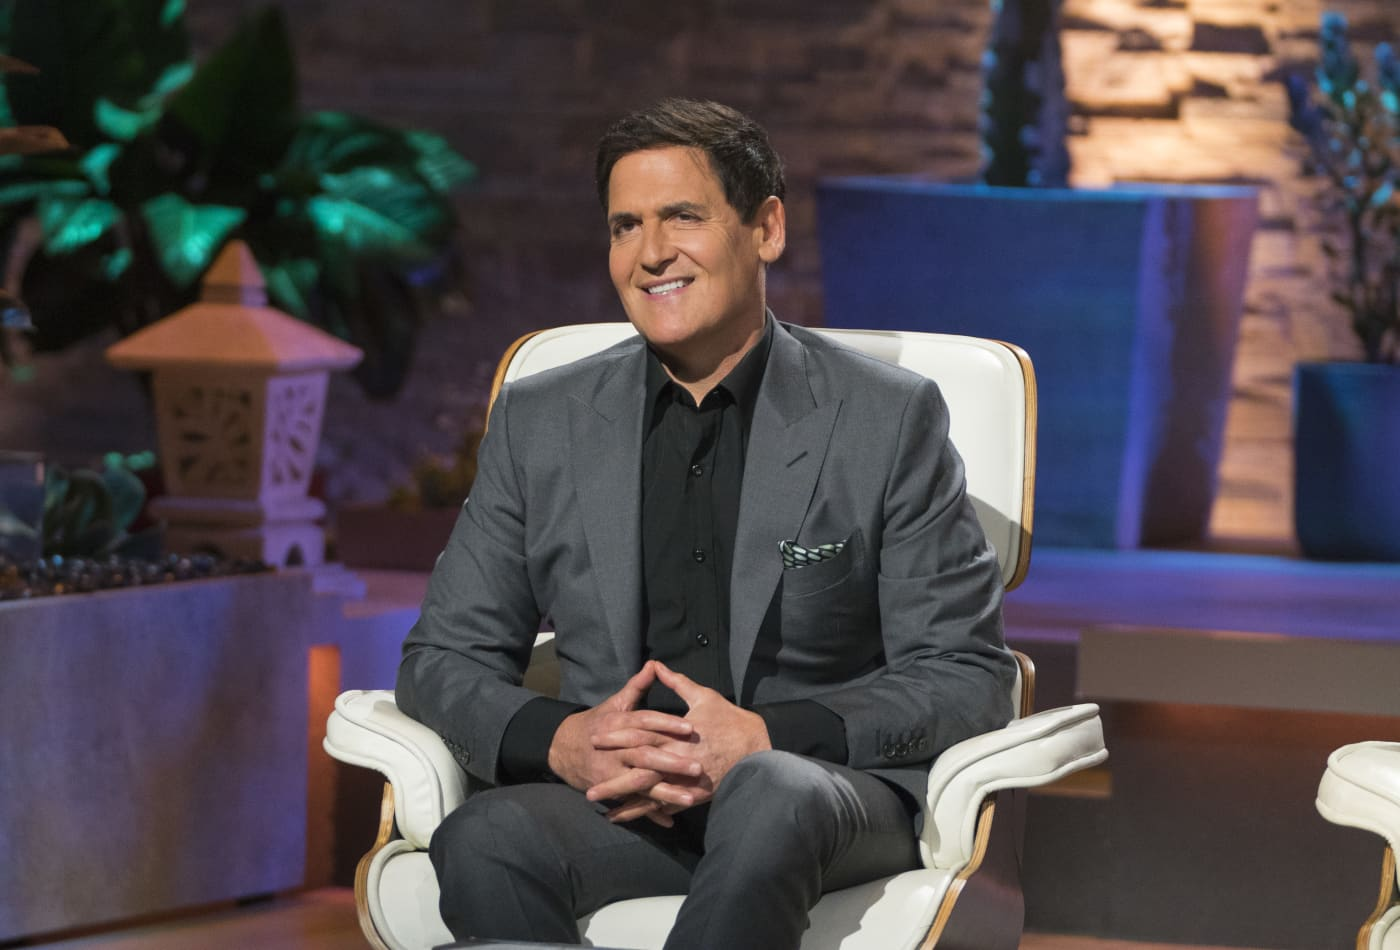 Mark Cuban on his cryptocurrency portfolio: 'I own a lot of Ethereum because I think it's the closest to a true currency'